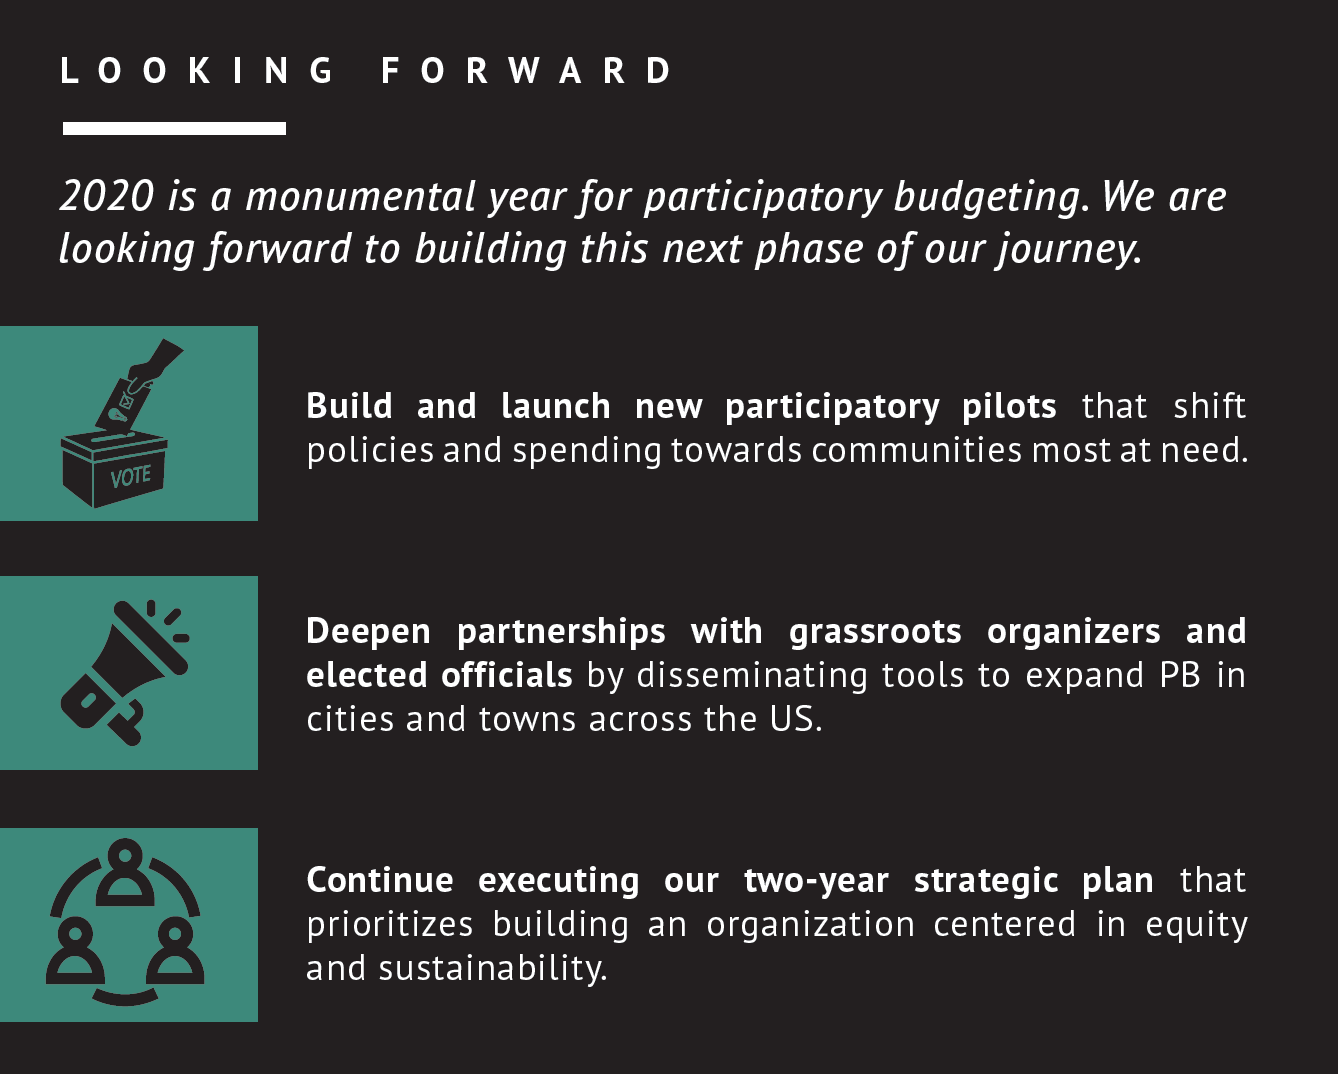 Looking forward - 2020 is a monumental year for participatory budgeting. We are looking forward to building this next phase of our journey.